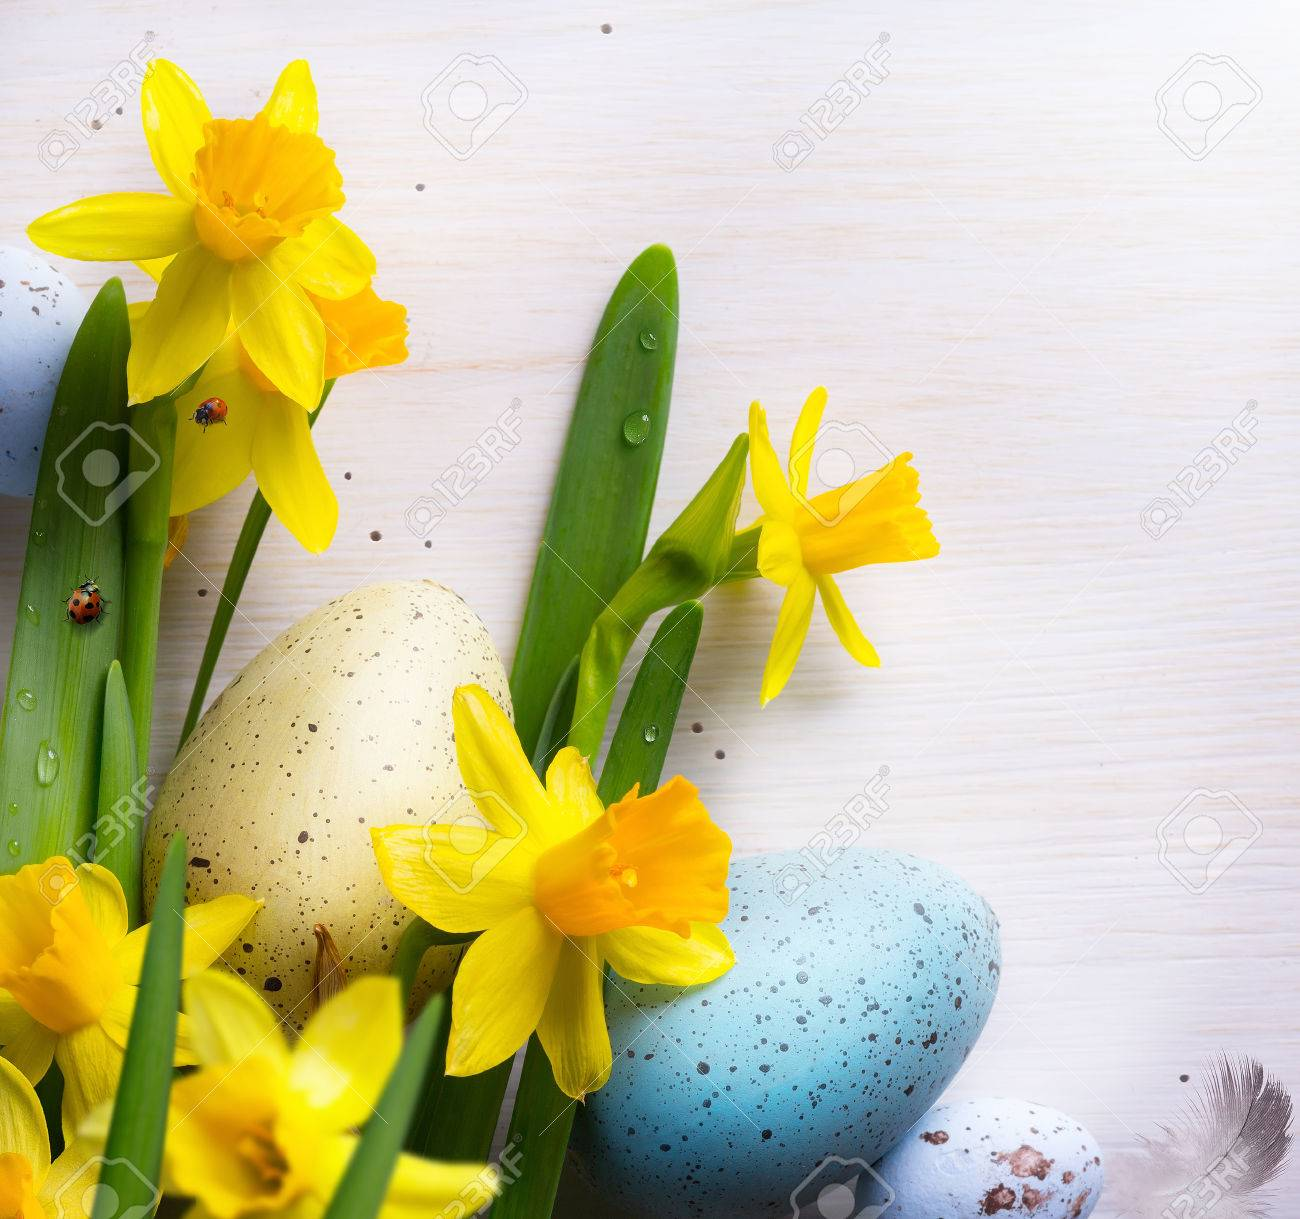 Happy Easter Background With Easter Eggs And Yellow Spring Flowers